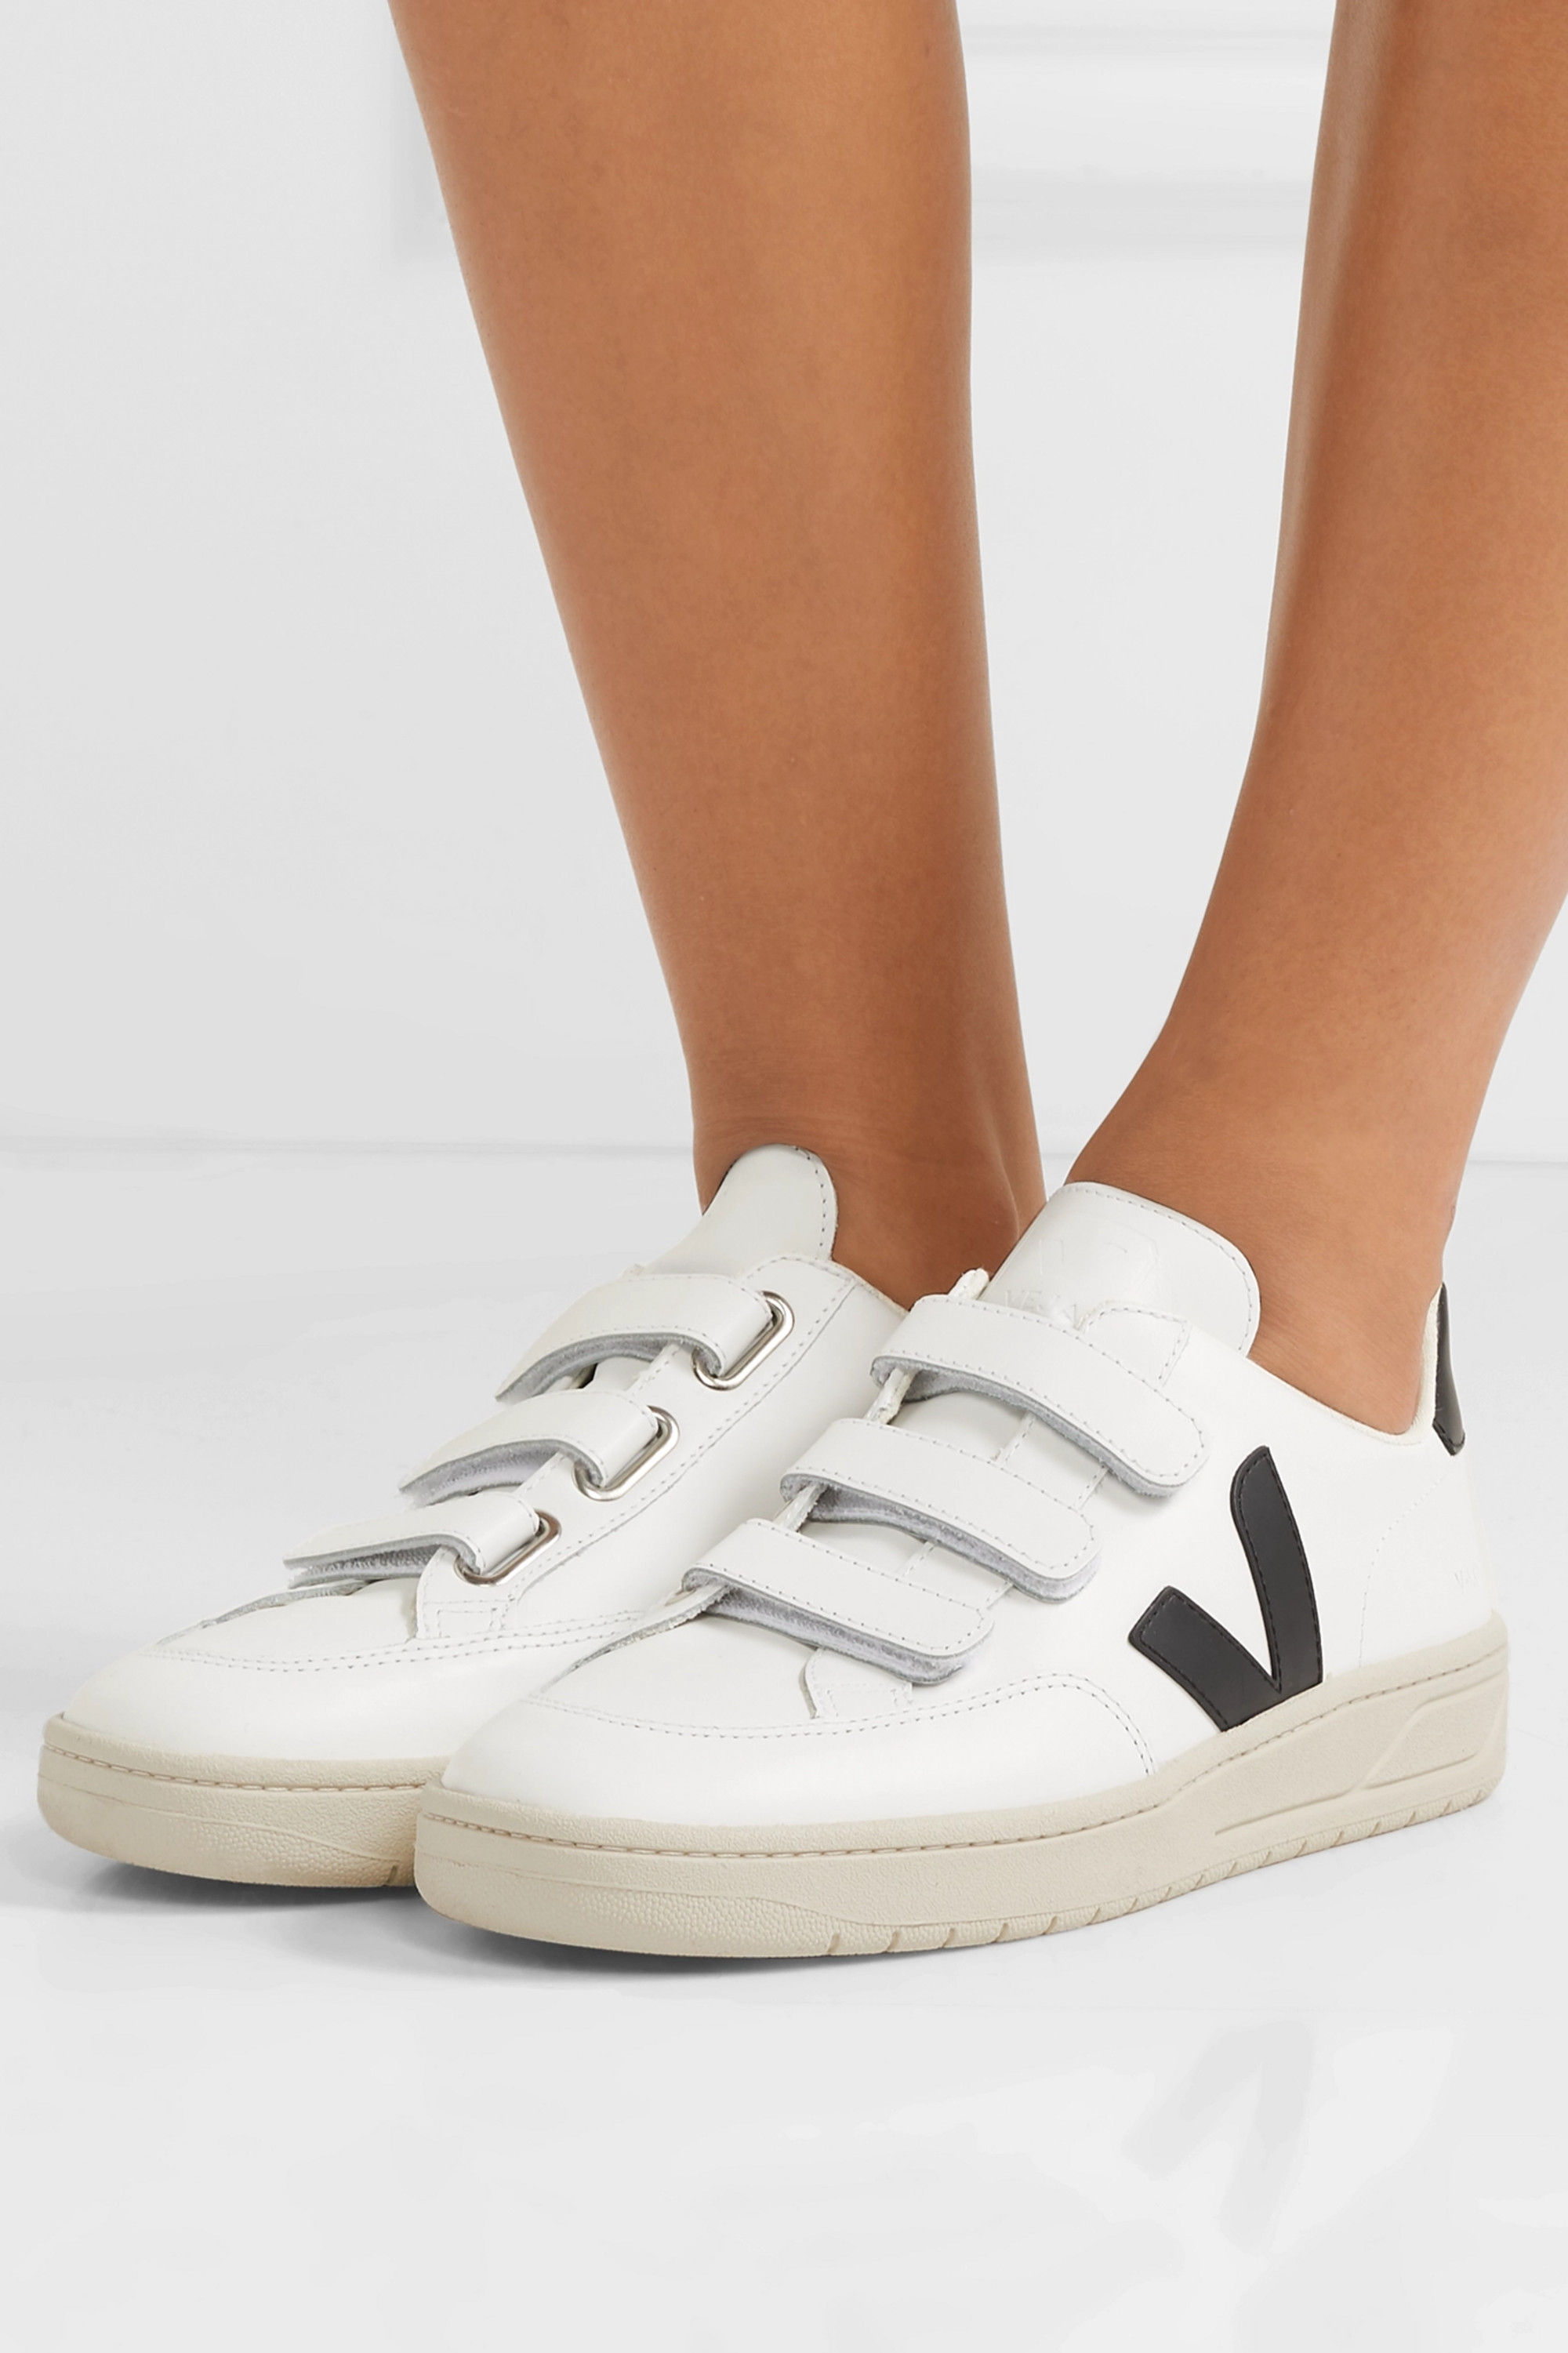 Veja + NET SUSTAIN V-Lock leather sneakers